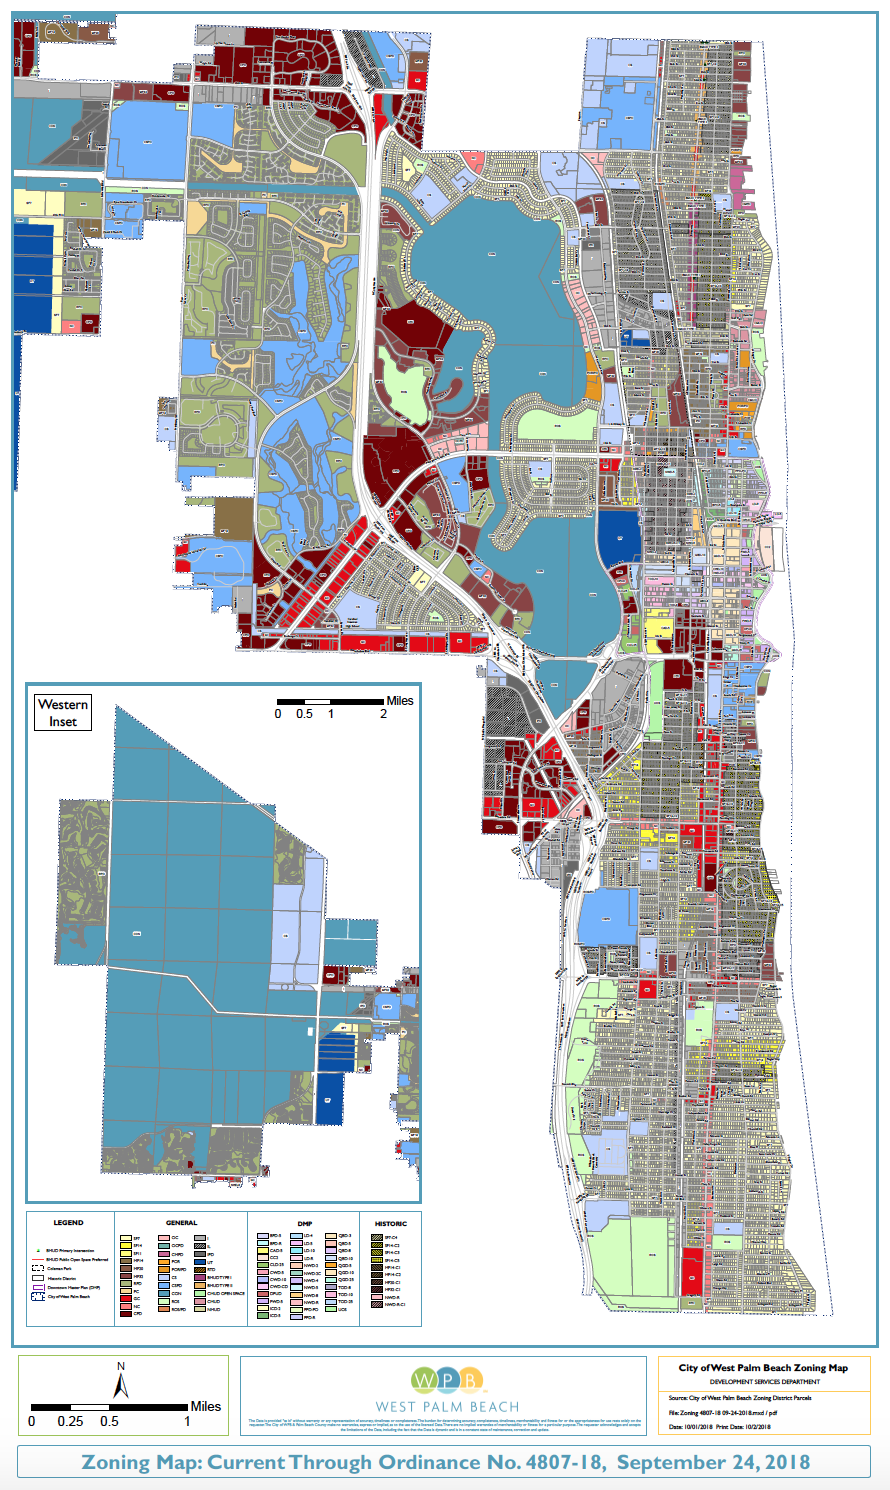 west palm beach commercial property for sale development florida